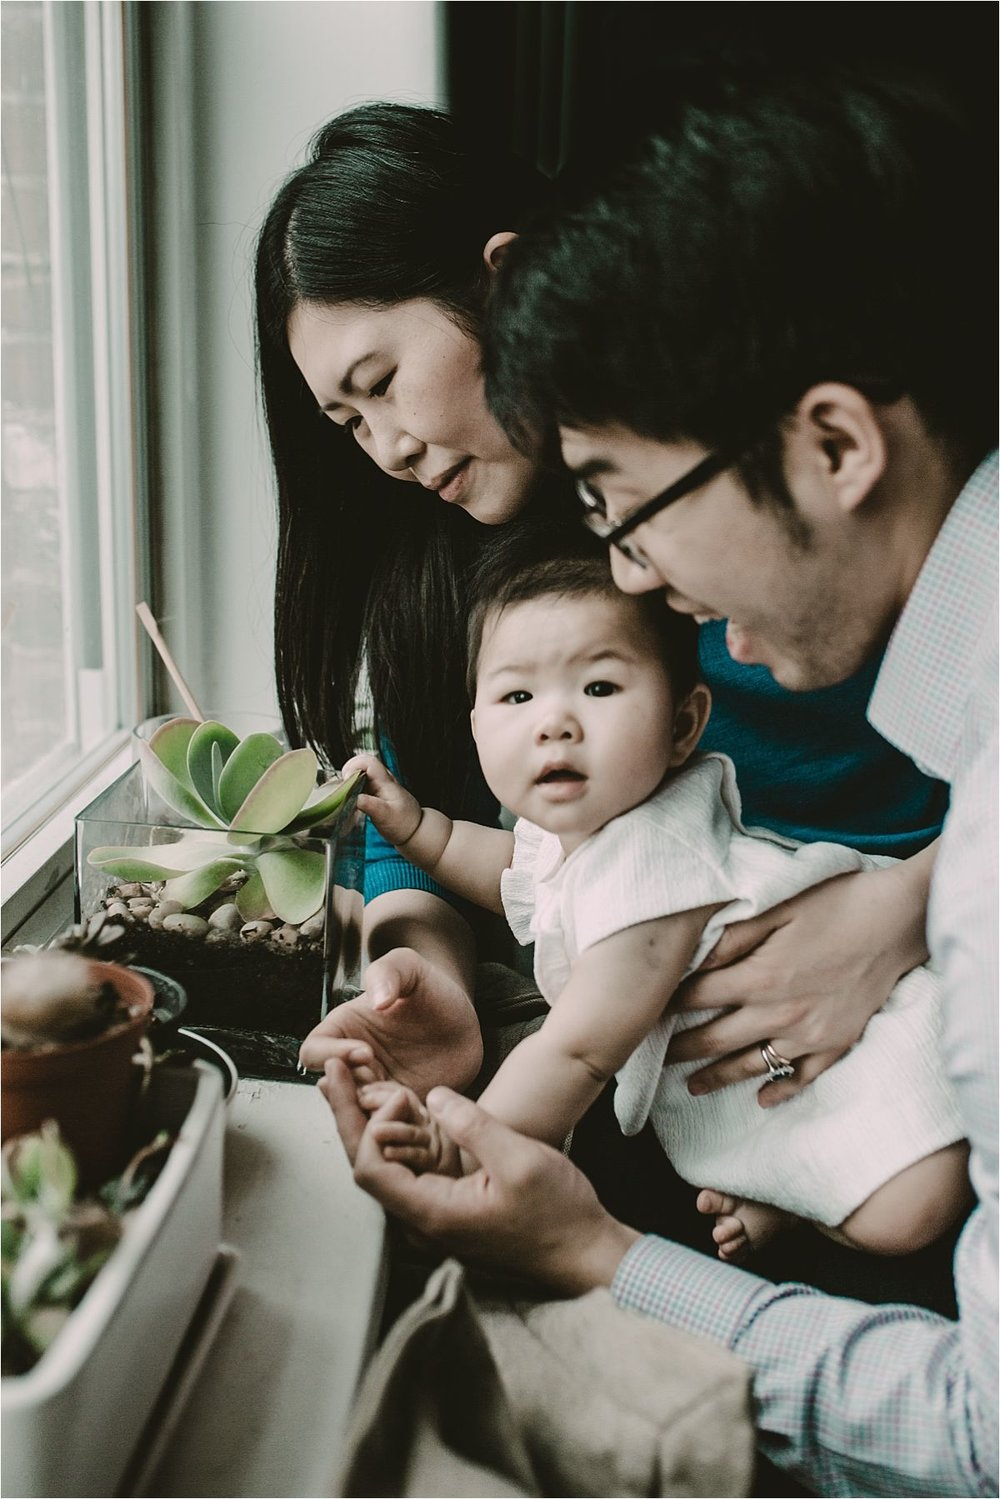 nyc family and newborn photographer baby girl plays with living room plants at window